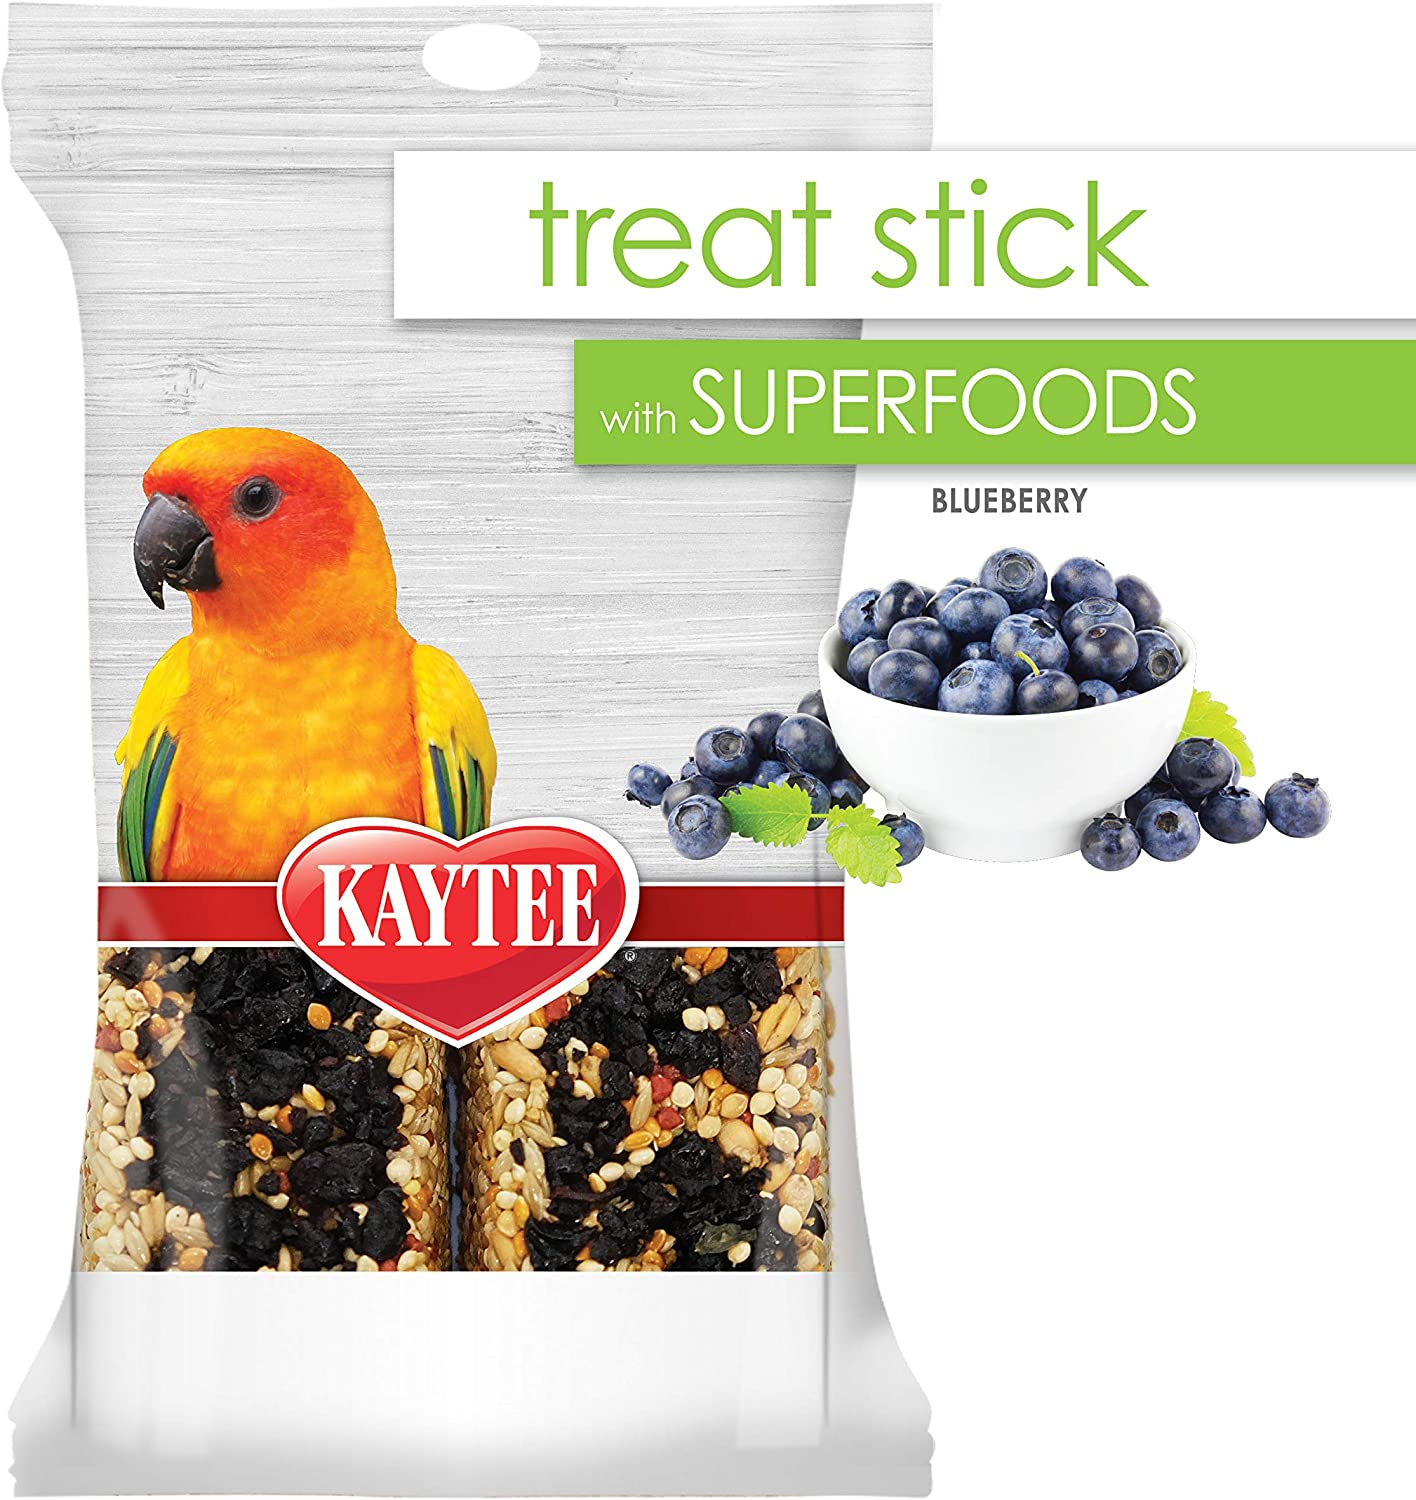 Kaytee Avian Superfood Treat Stick Blueberry 5.5 Ounces